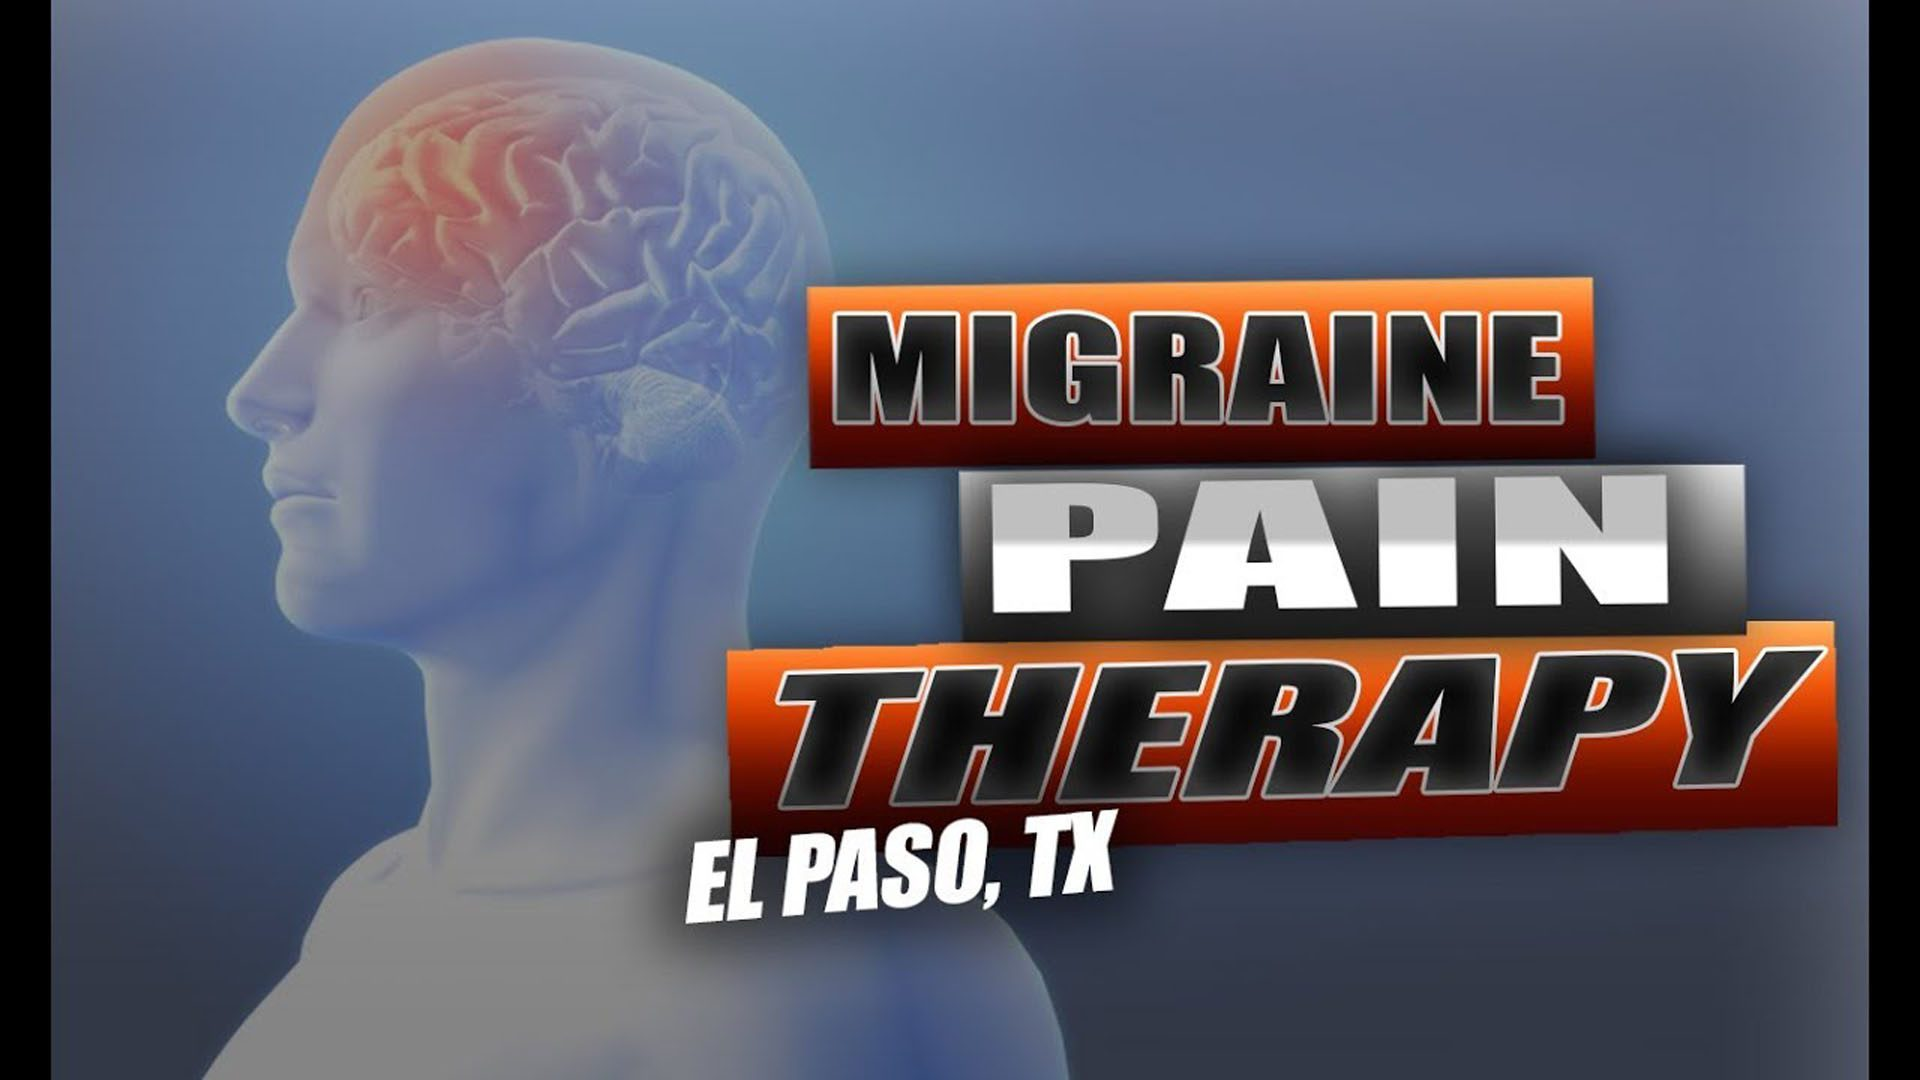 Migraine Pain Therapy | Video | El Paso, TX.